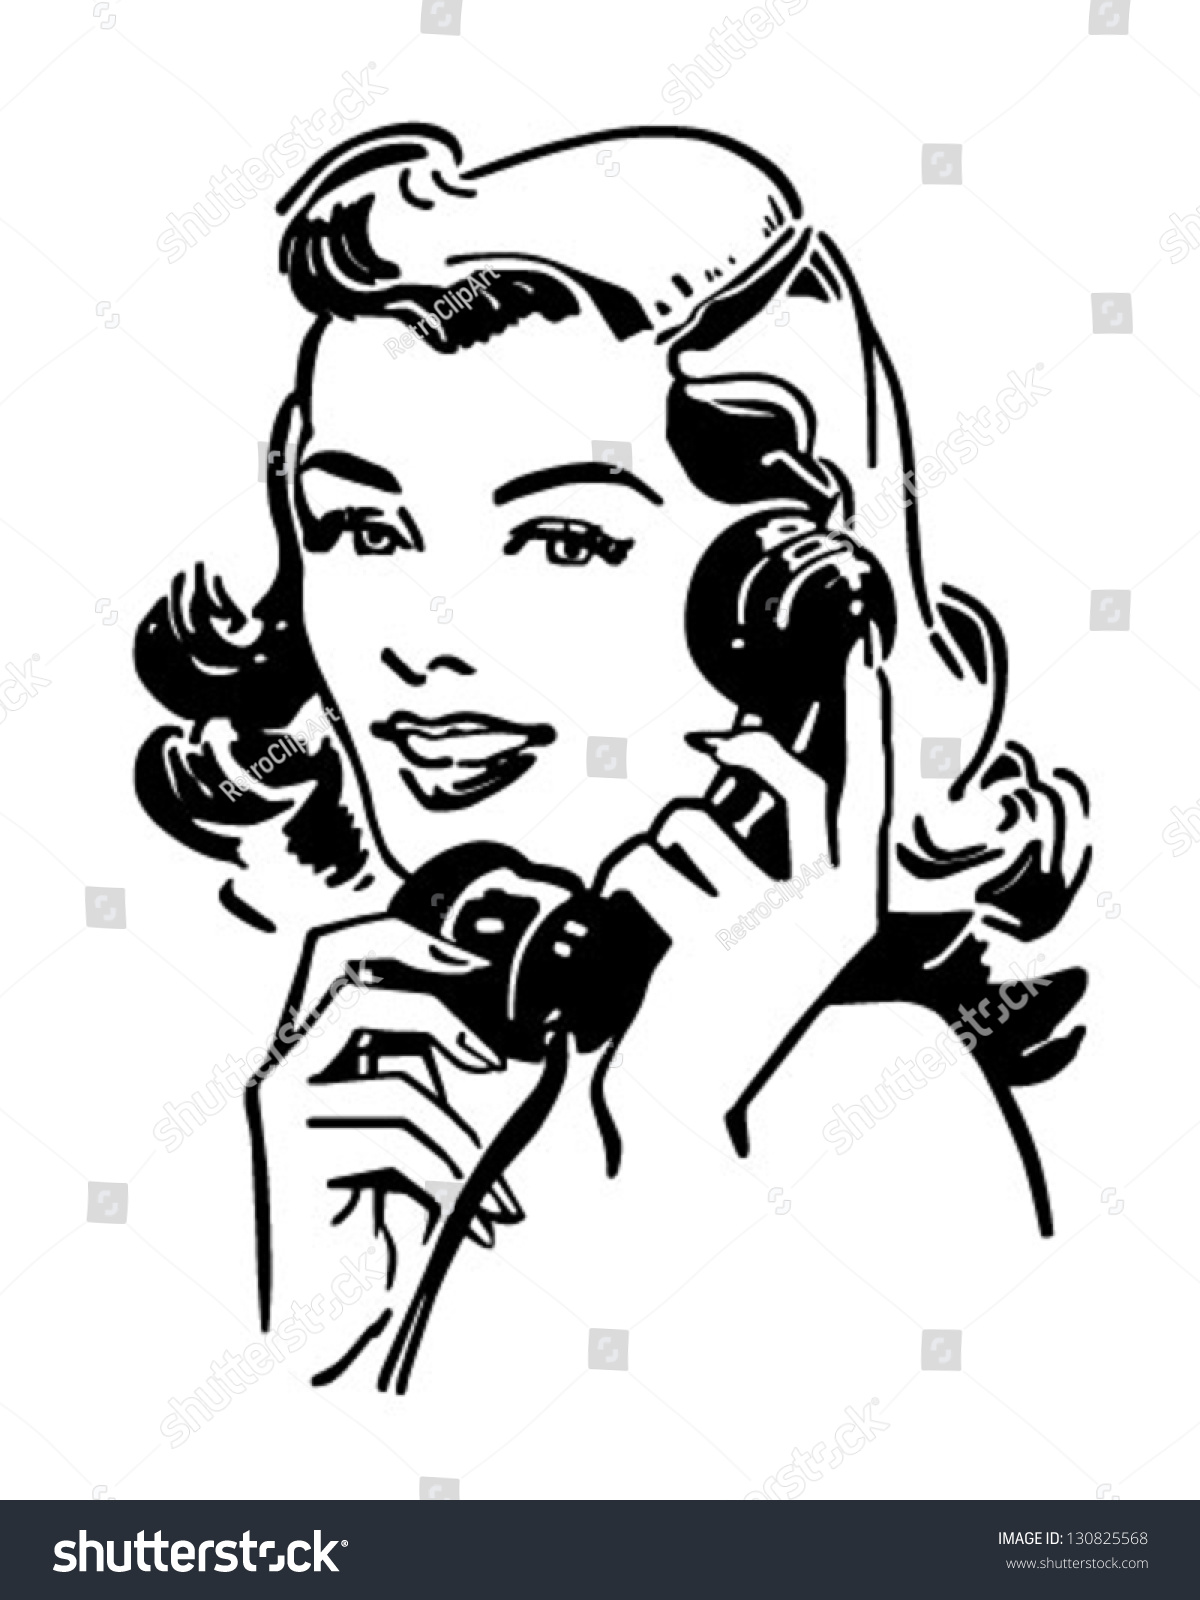 vintage telephone clipart - photo #47